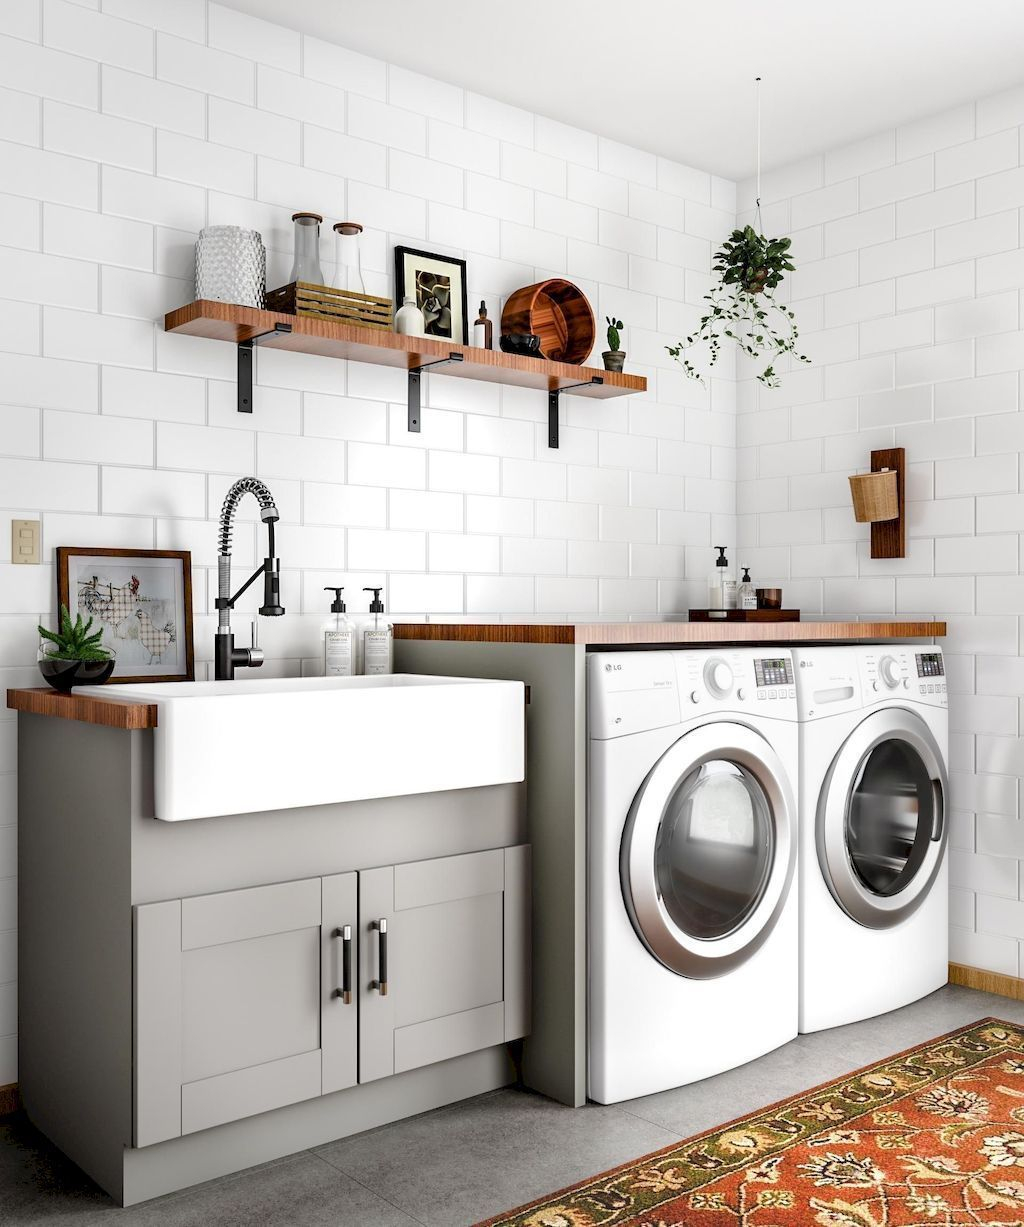 Best Laundry Room Design Ideas To Try This Season 12